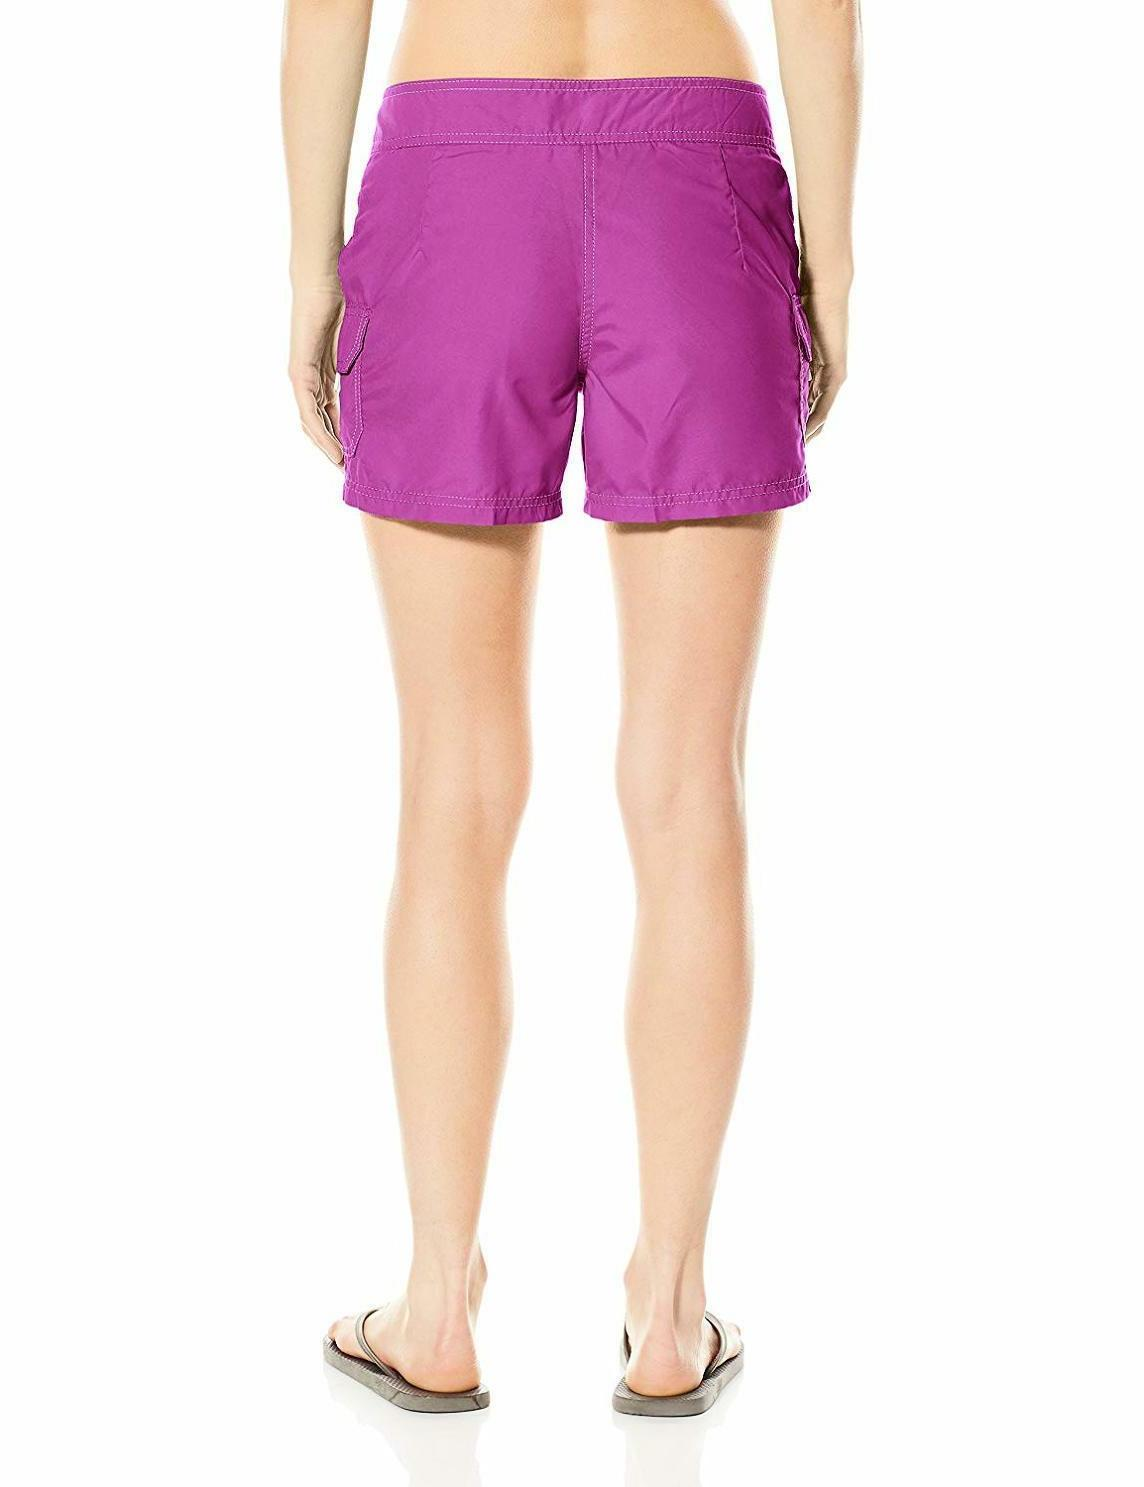 NWT 'Breeze' Purple, Size 8100